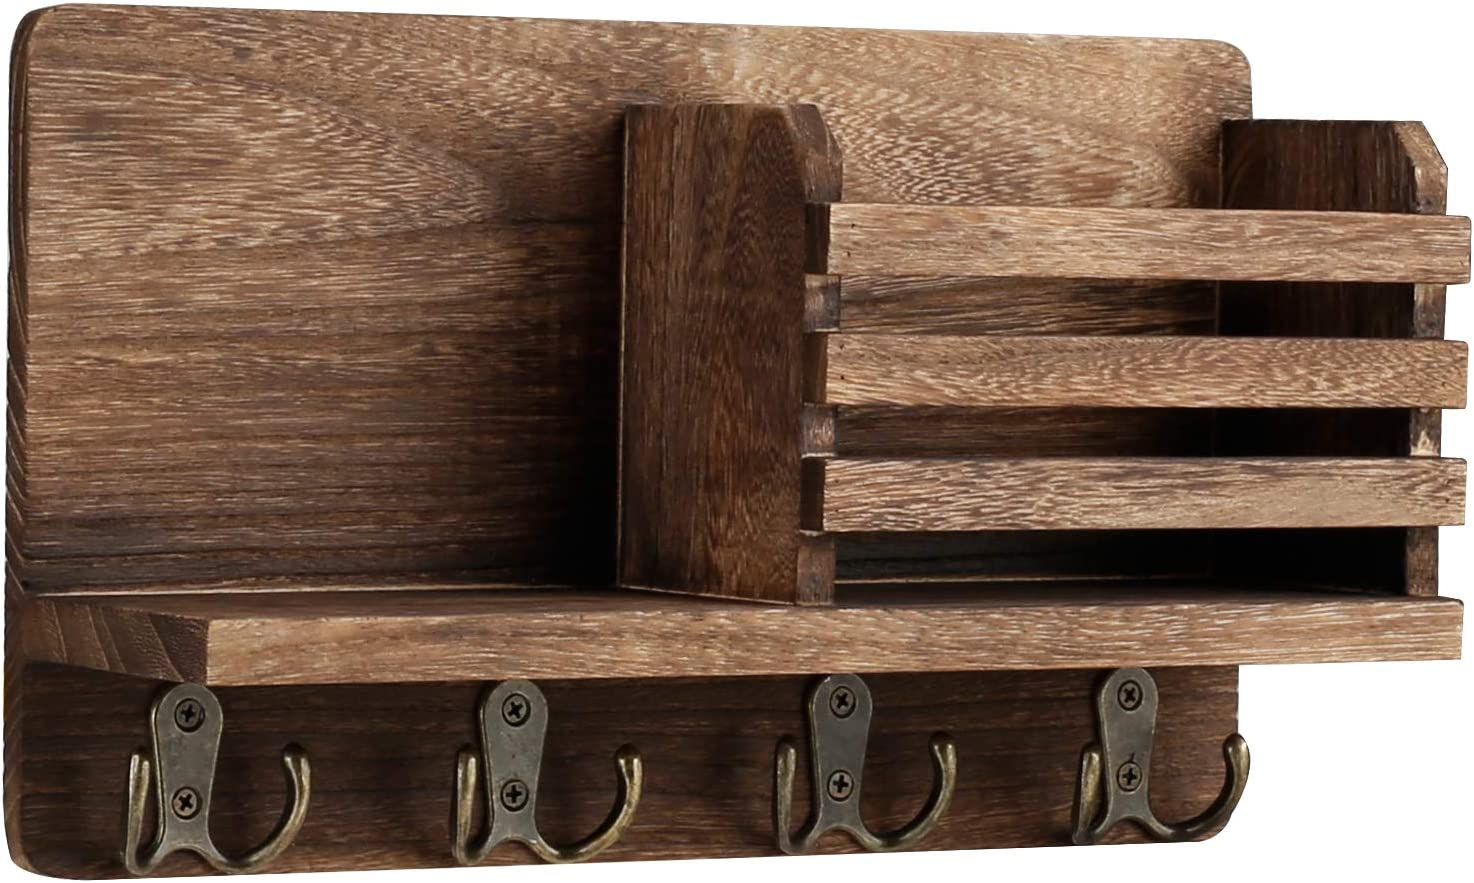 """Entryway Mail Envelope Organizer with 4 Key Hooks Wall Mounted, Rustic Wood Mail Holder Shelf with Key Hooks for Wall, Perfect for Entryway, Kitchen, Mudroom, 11.8"""" x 7"""" (Rustic Brown)"""